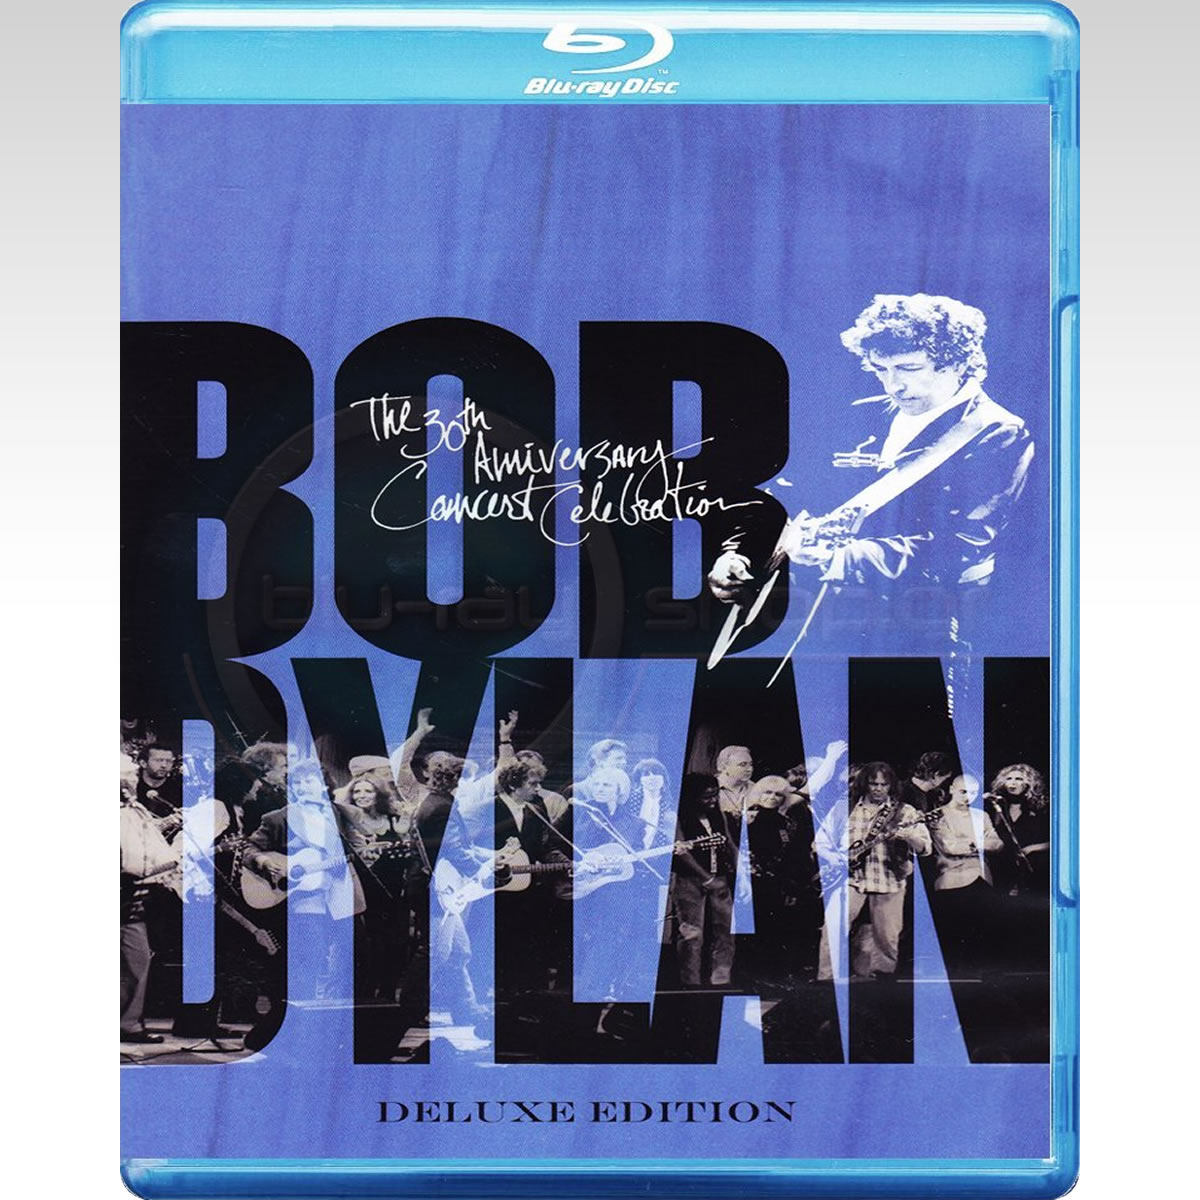 BOB DYLAN : THE 30th ANNIVERSARY CONCERT CELEBRATION (BLU-RAY)